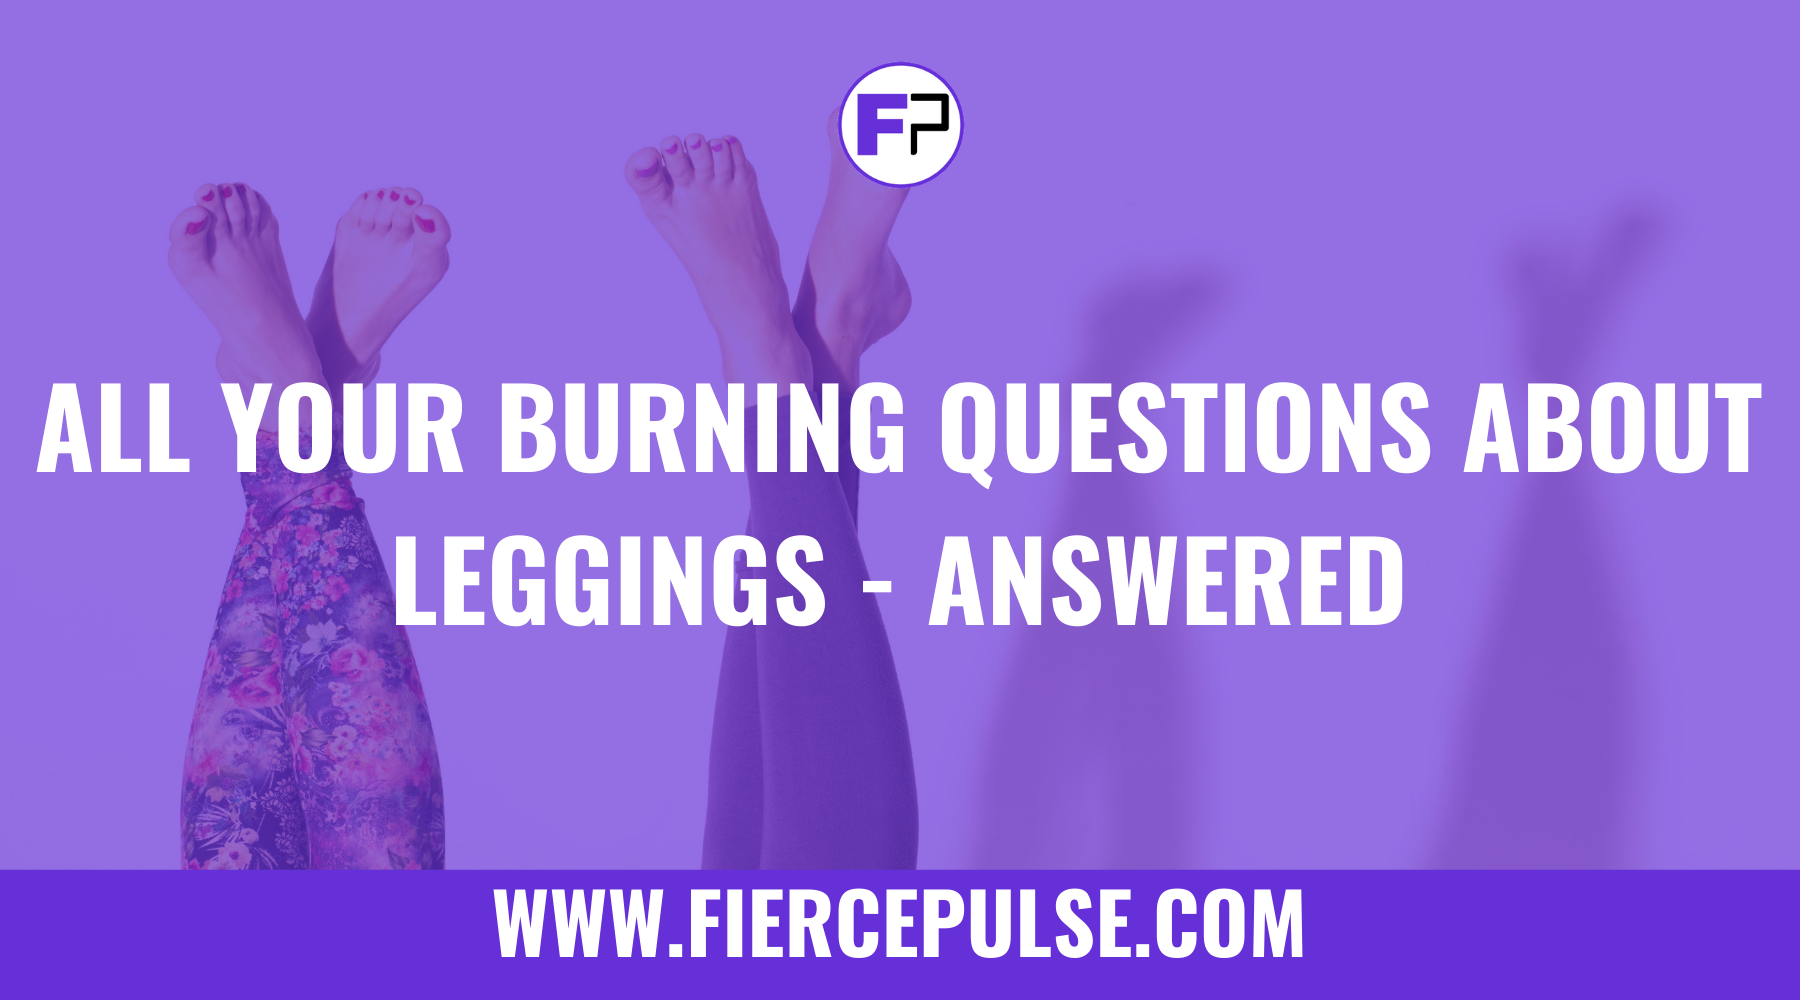 All Your Burning Questions About Leggings - Answered